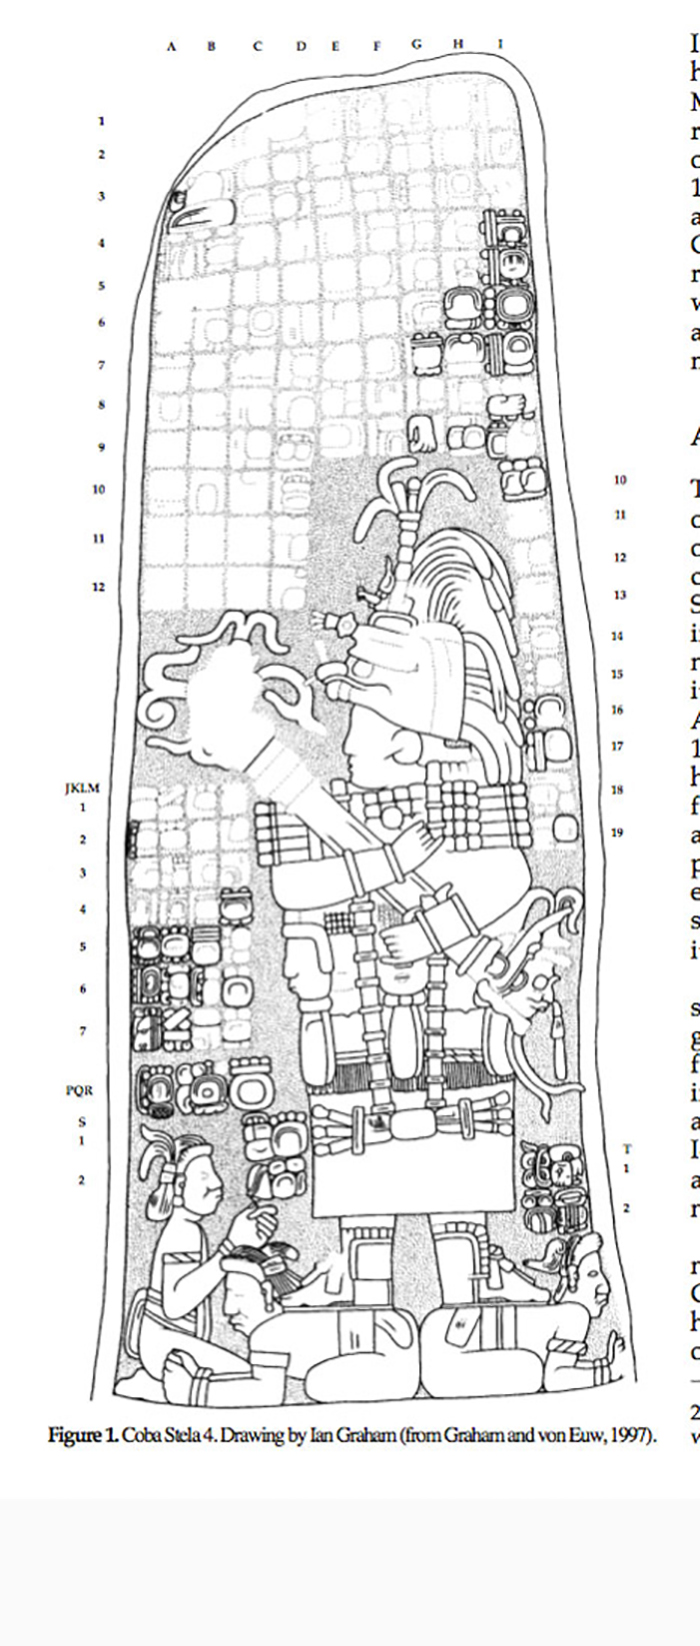 Female rulers standing on top of captives. Stela 4, Cobá. Drawing by Ian Graham (from Graham and von Euw 1997).